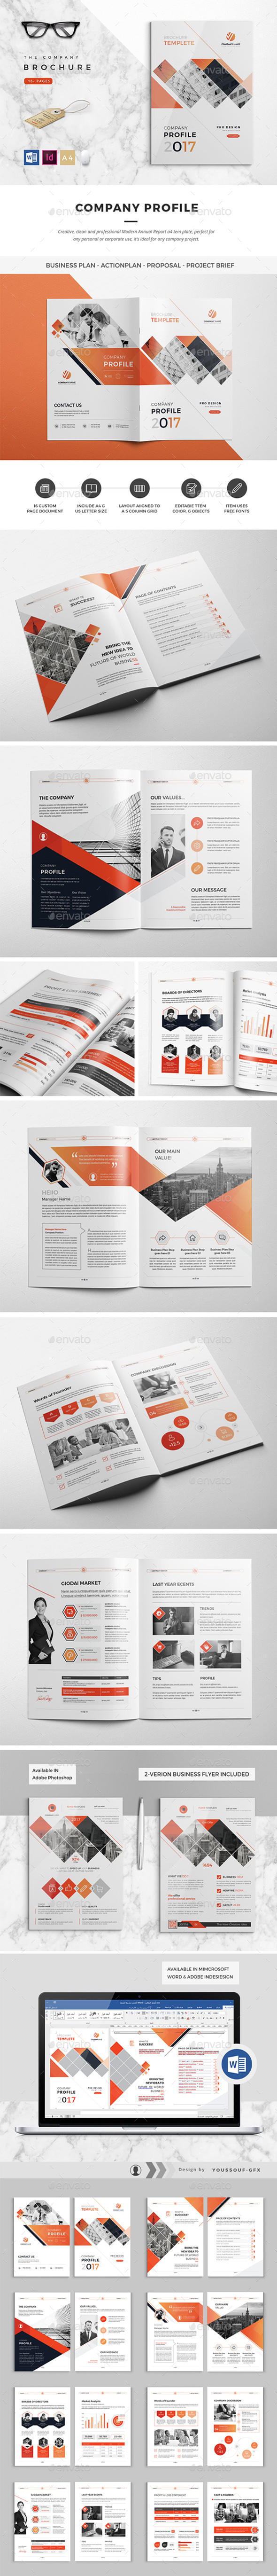 Clean Company Profile - Corporate Brochures